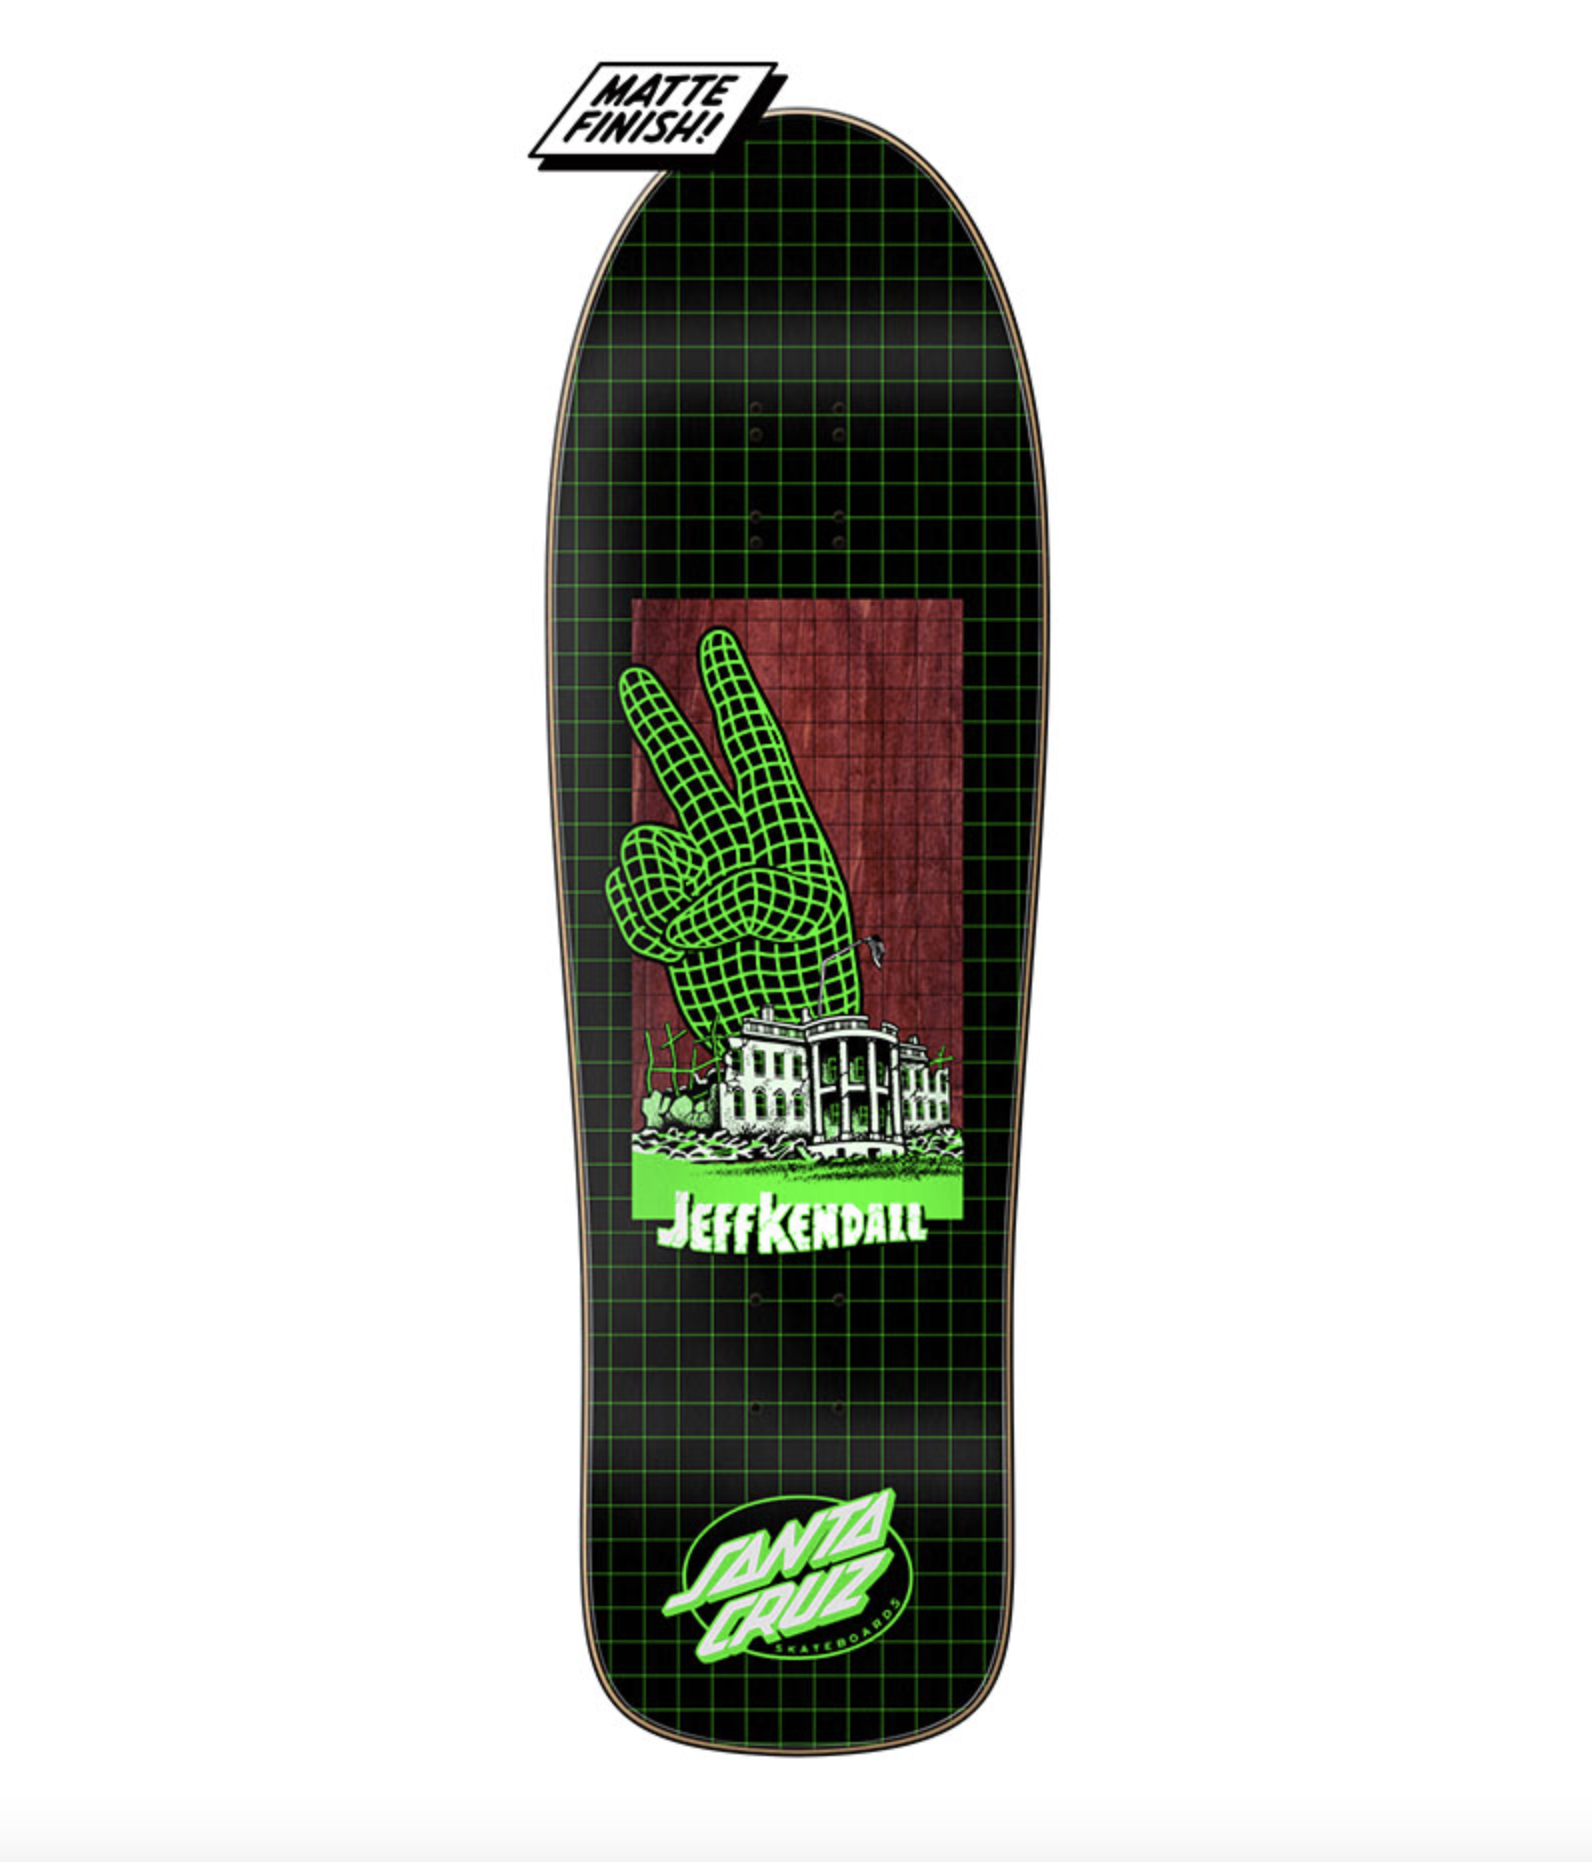 Santa Cruz DECK-SANTA CRUZ ATOMIC PEACE PREISSUE KENDALL (9.7)